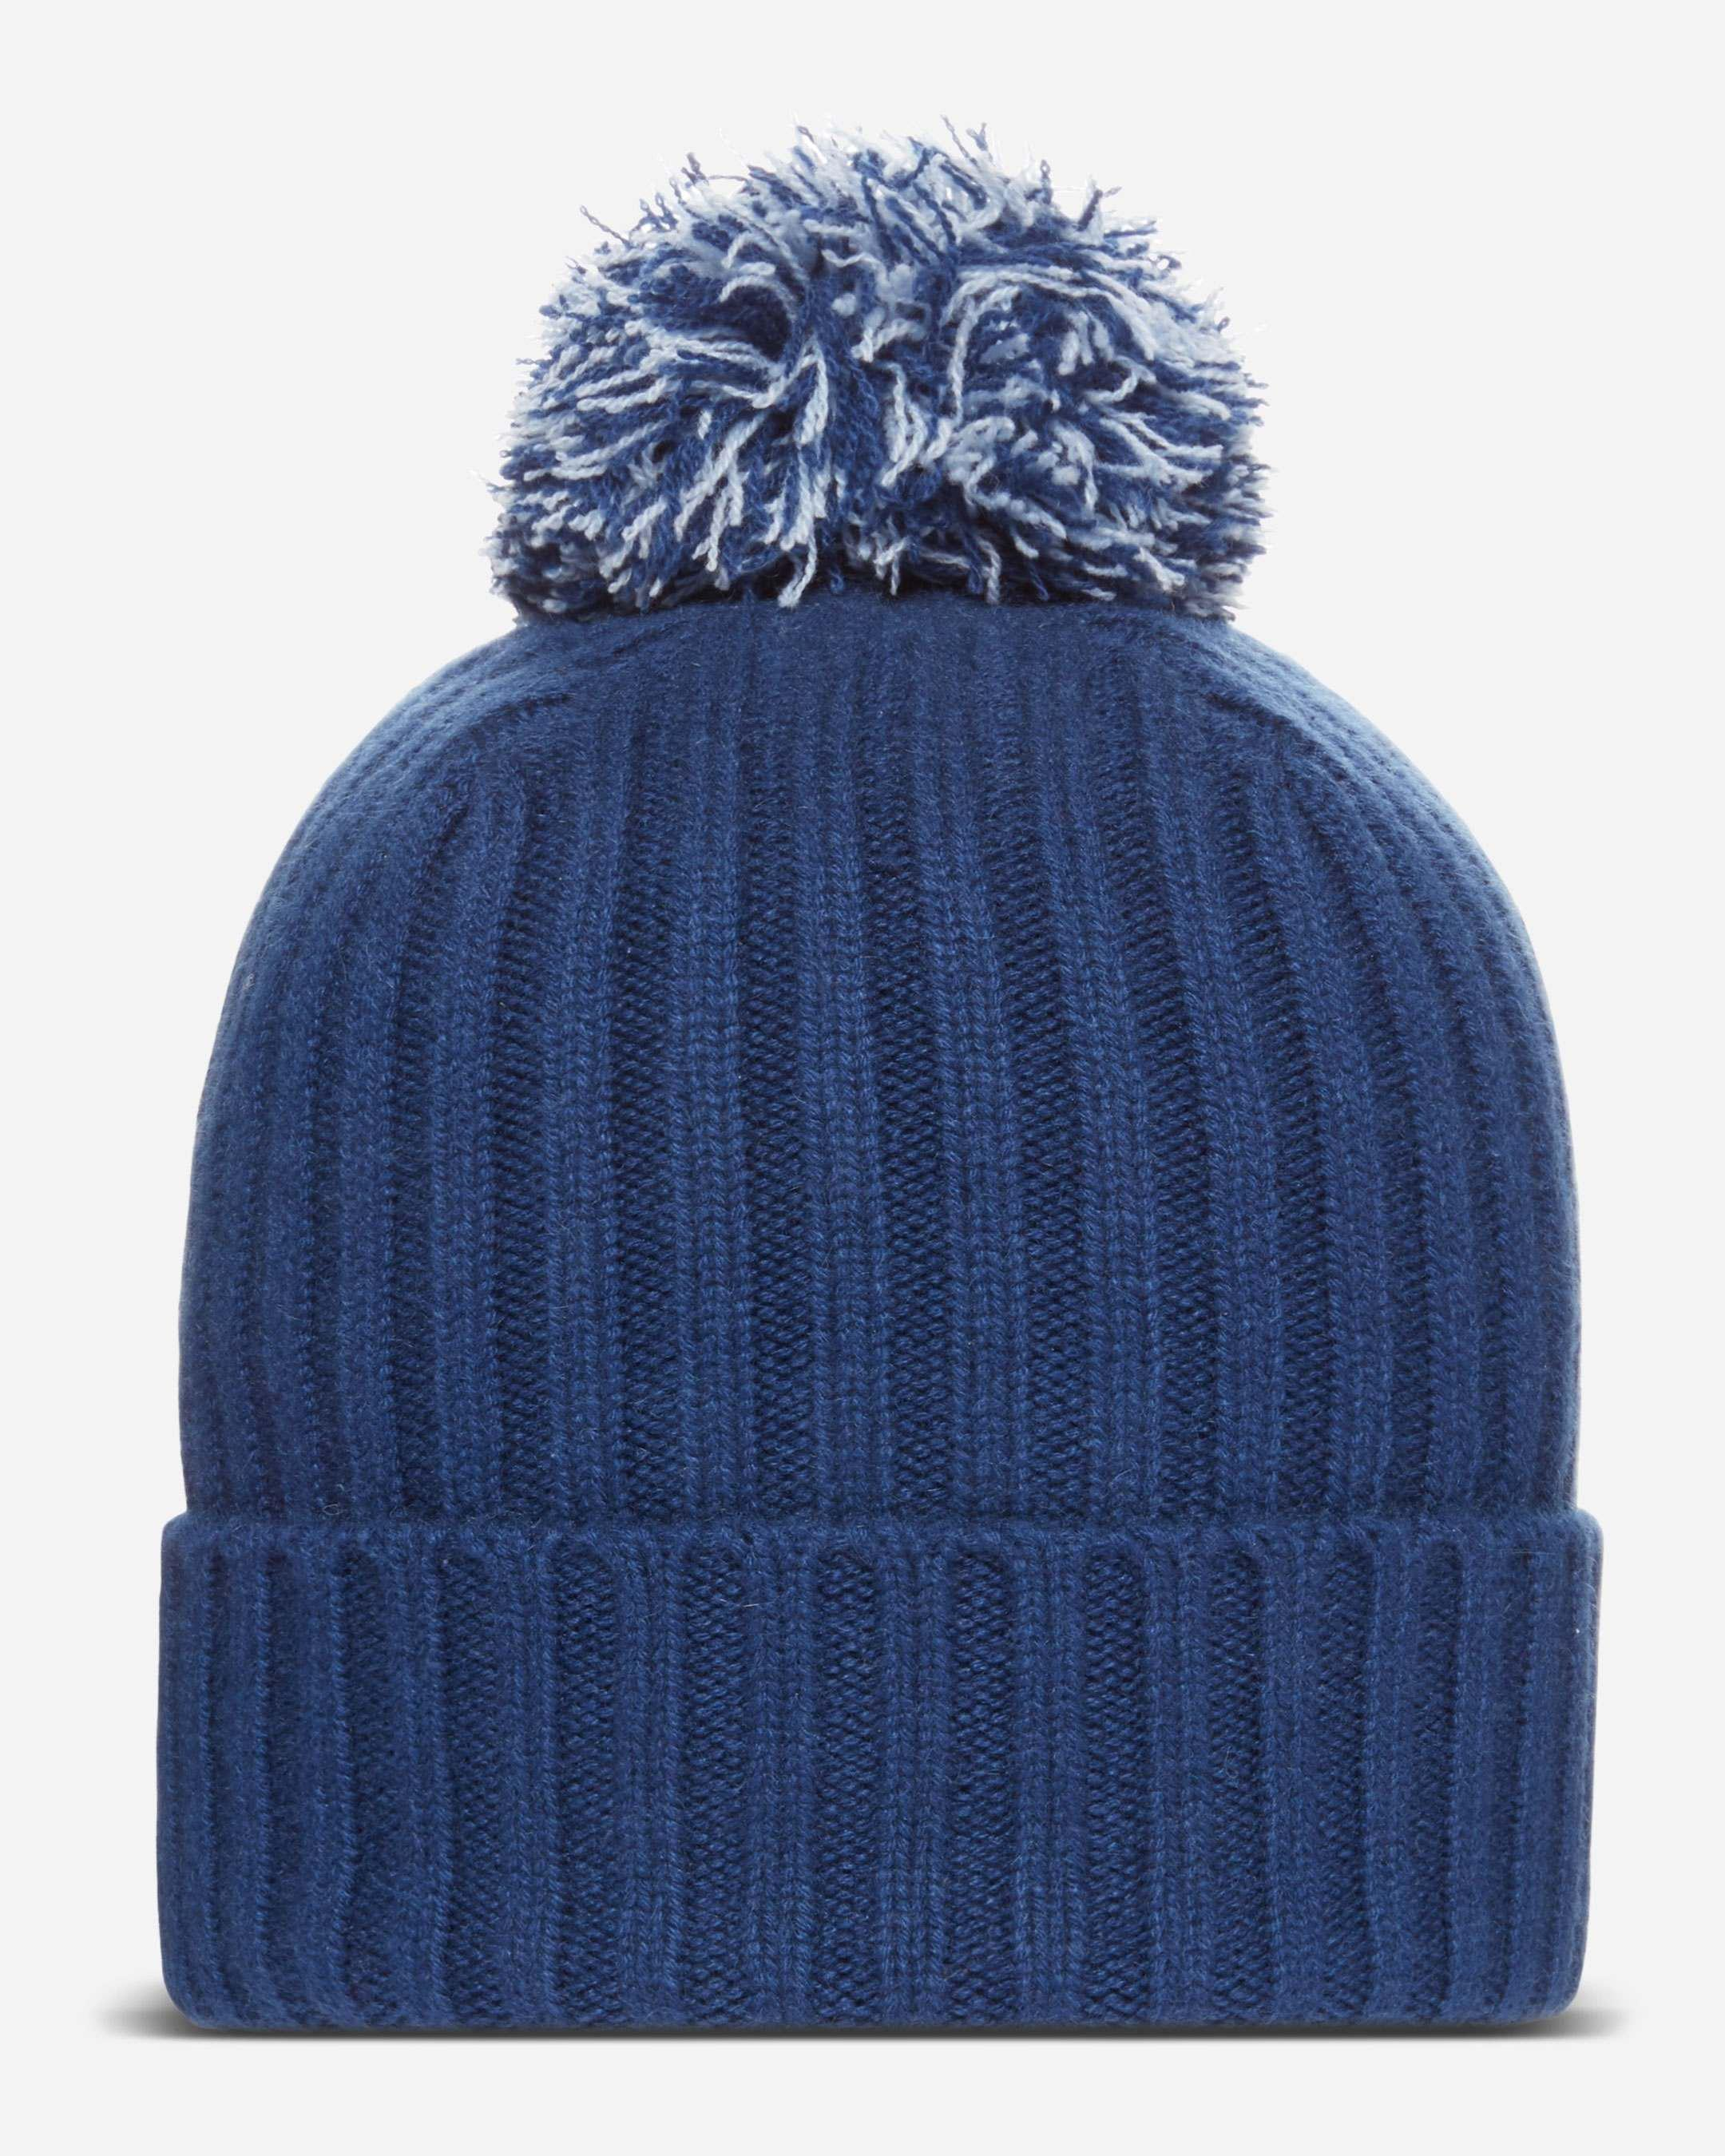 21b06915a0a N.Peal Cashmere Ribbed Cashmere Hat With Cashmere Pom in Blue for ...